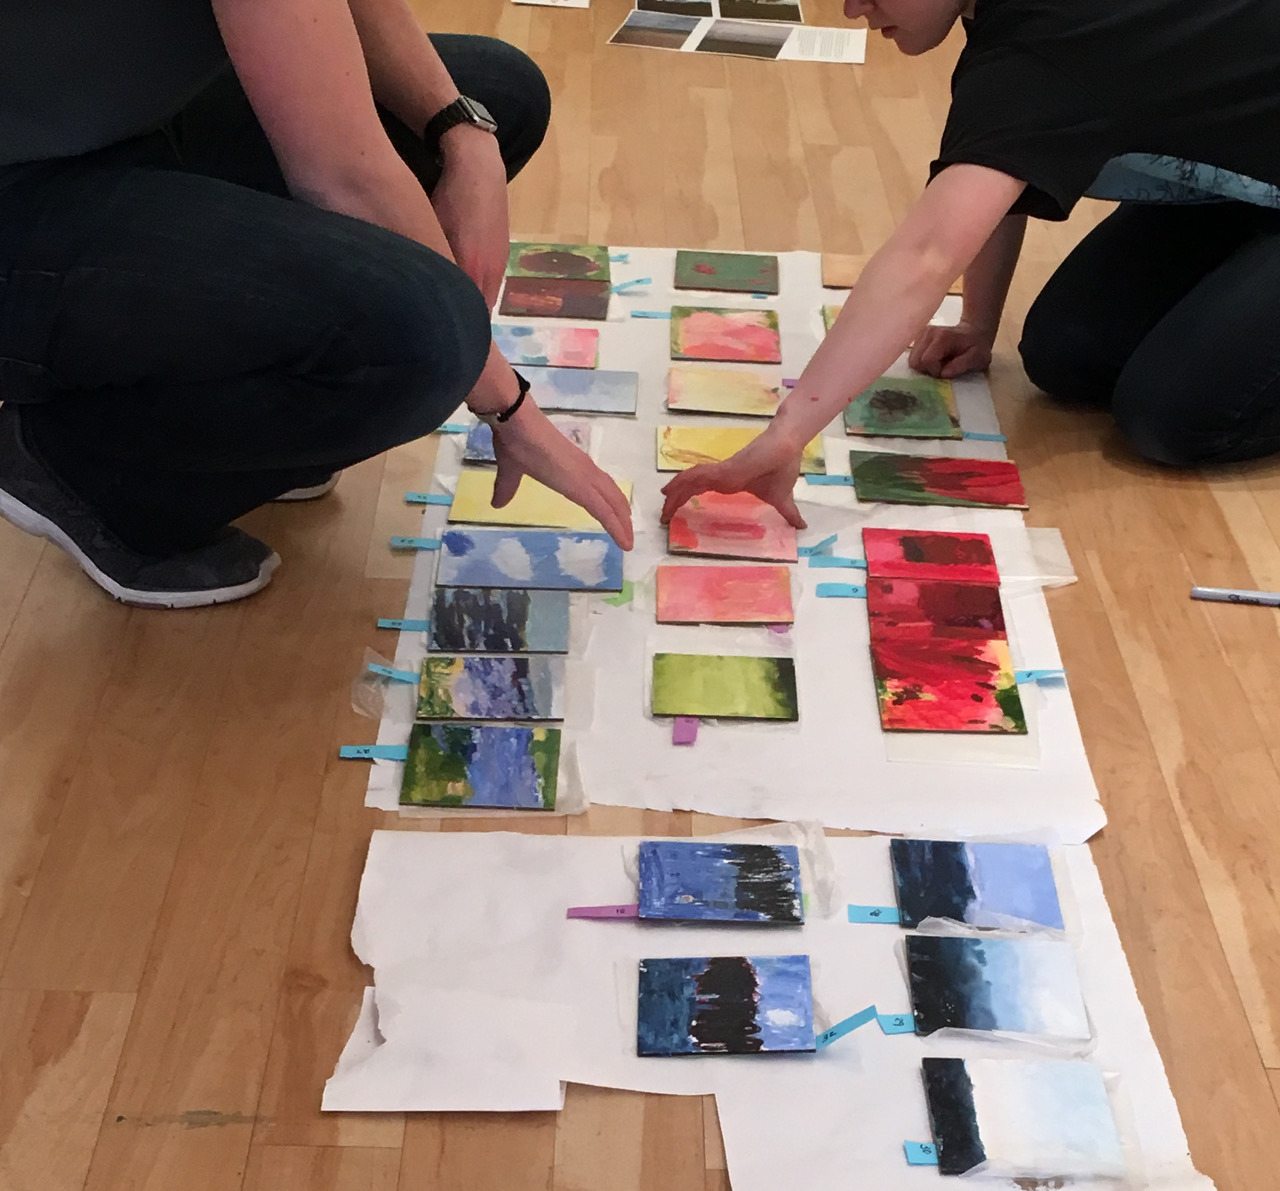 students arranging artwork on paper